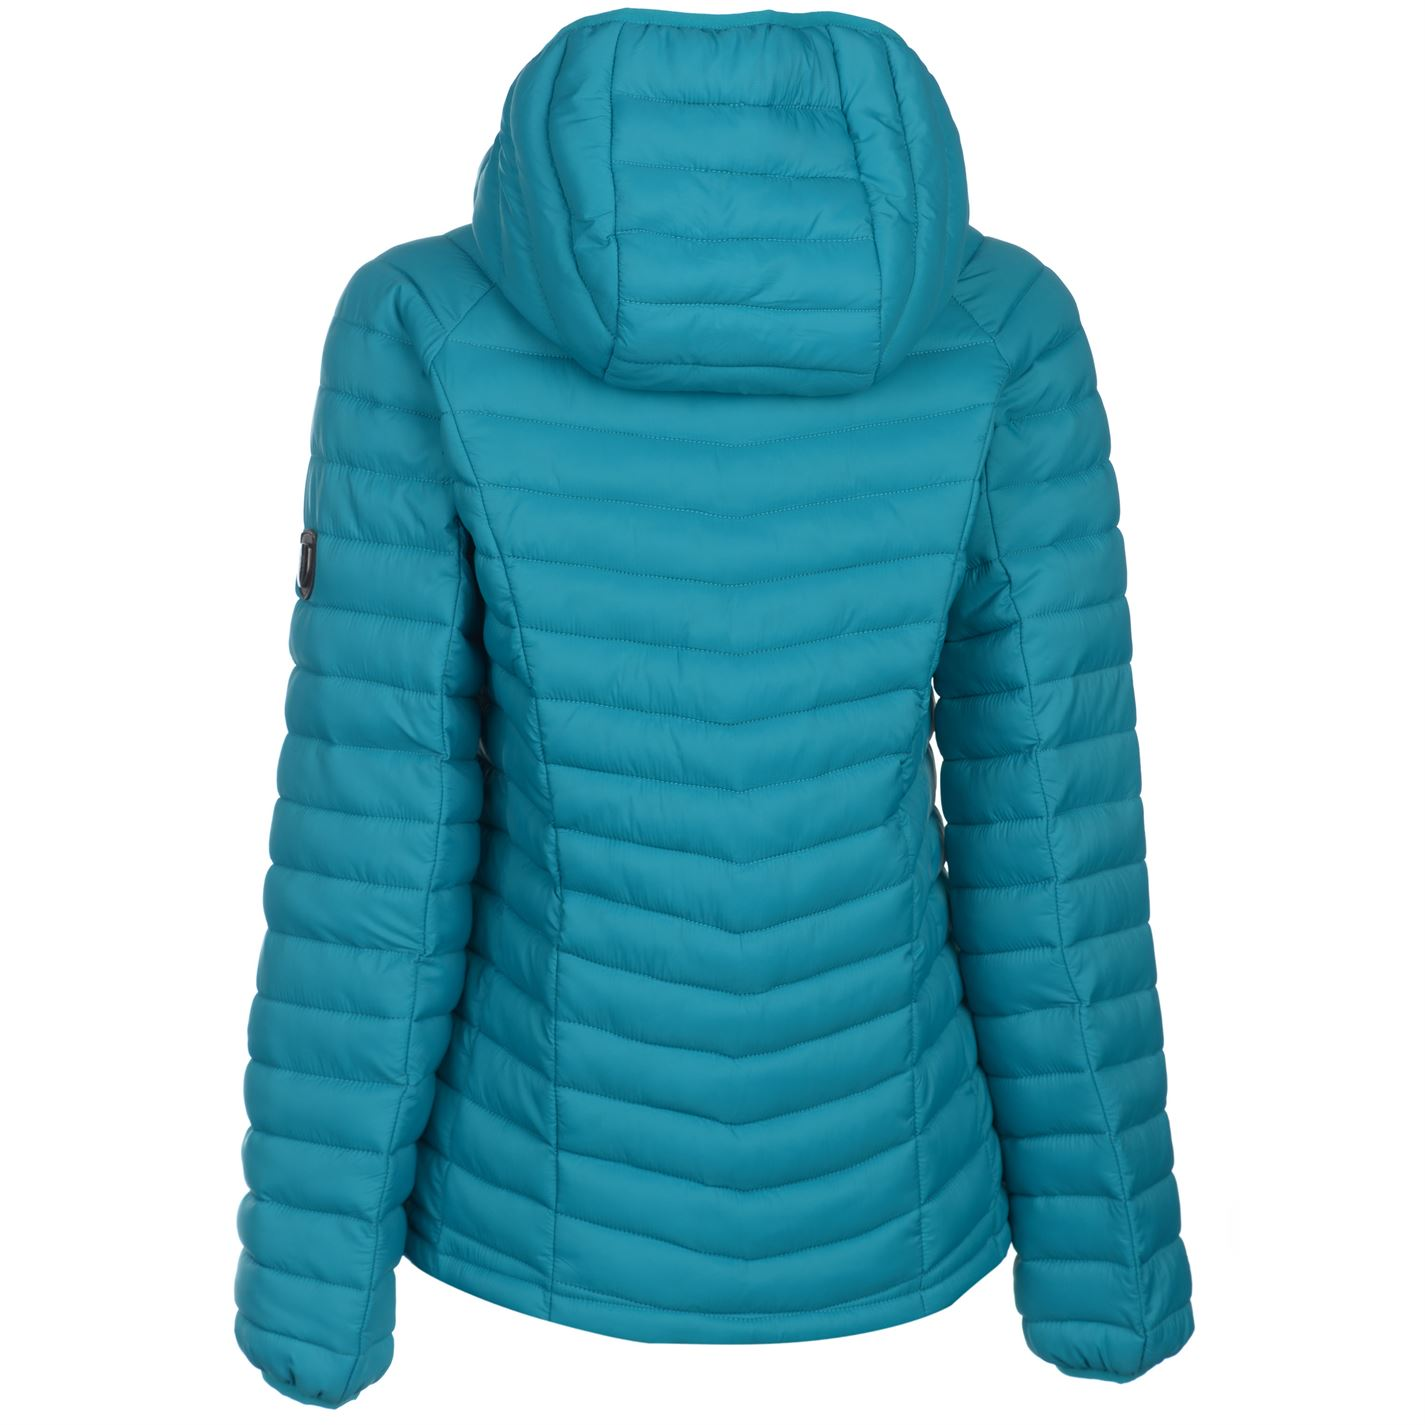 877012e2a Details about Karrimor Hot Crag Insulated Jacket Ladies Puffer Coat Top  Full Length Sleeve